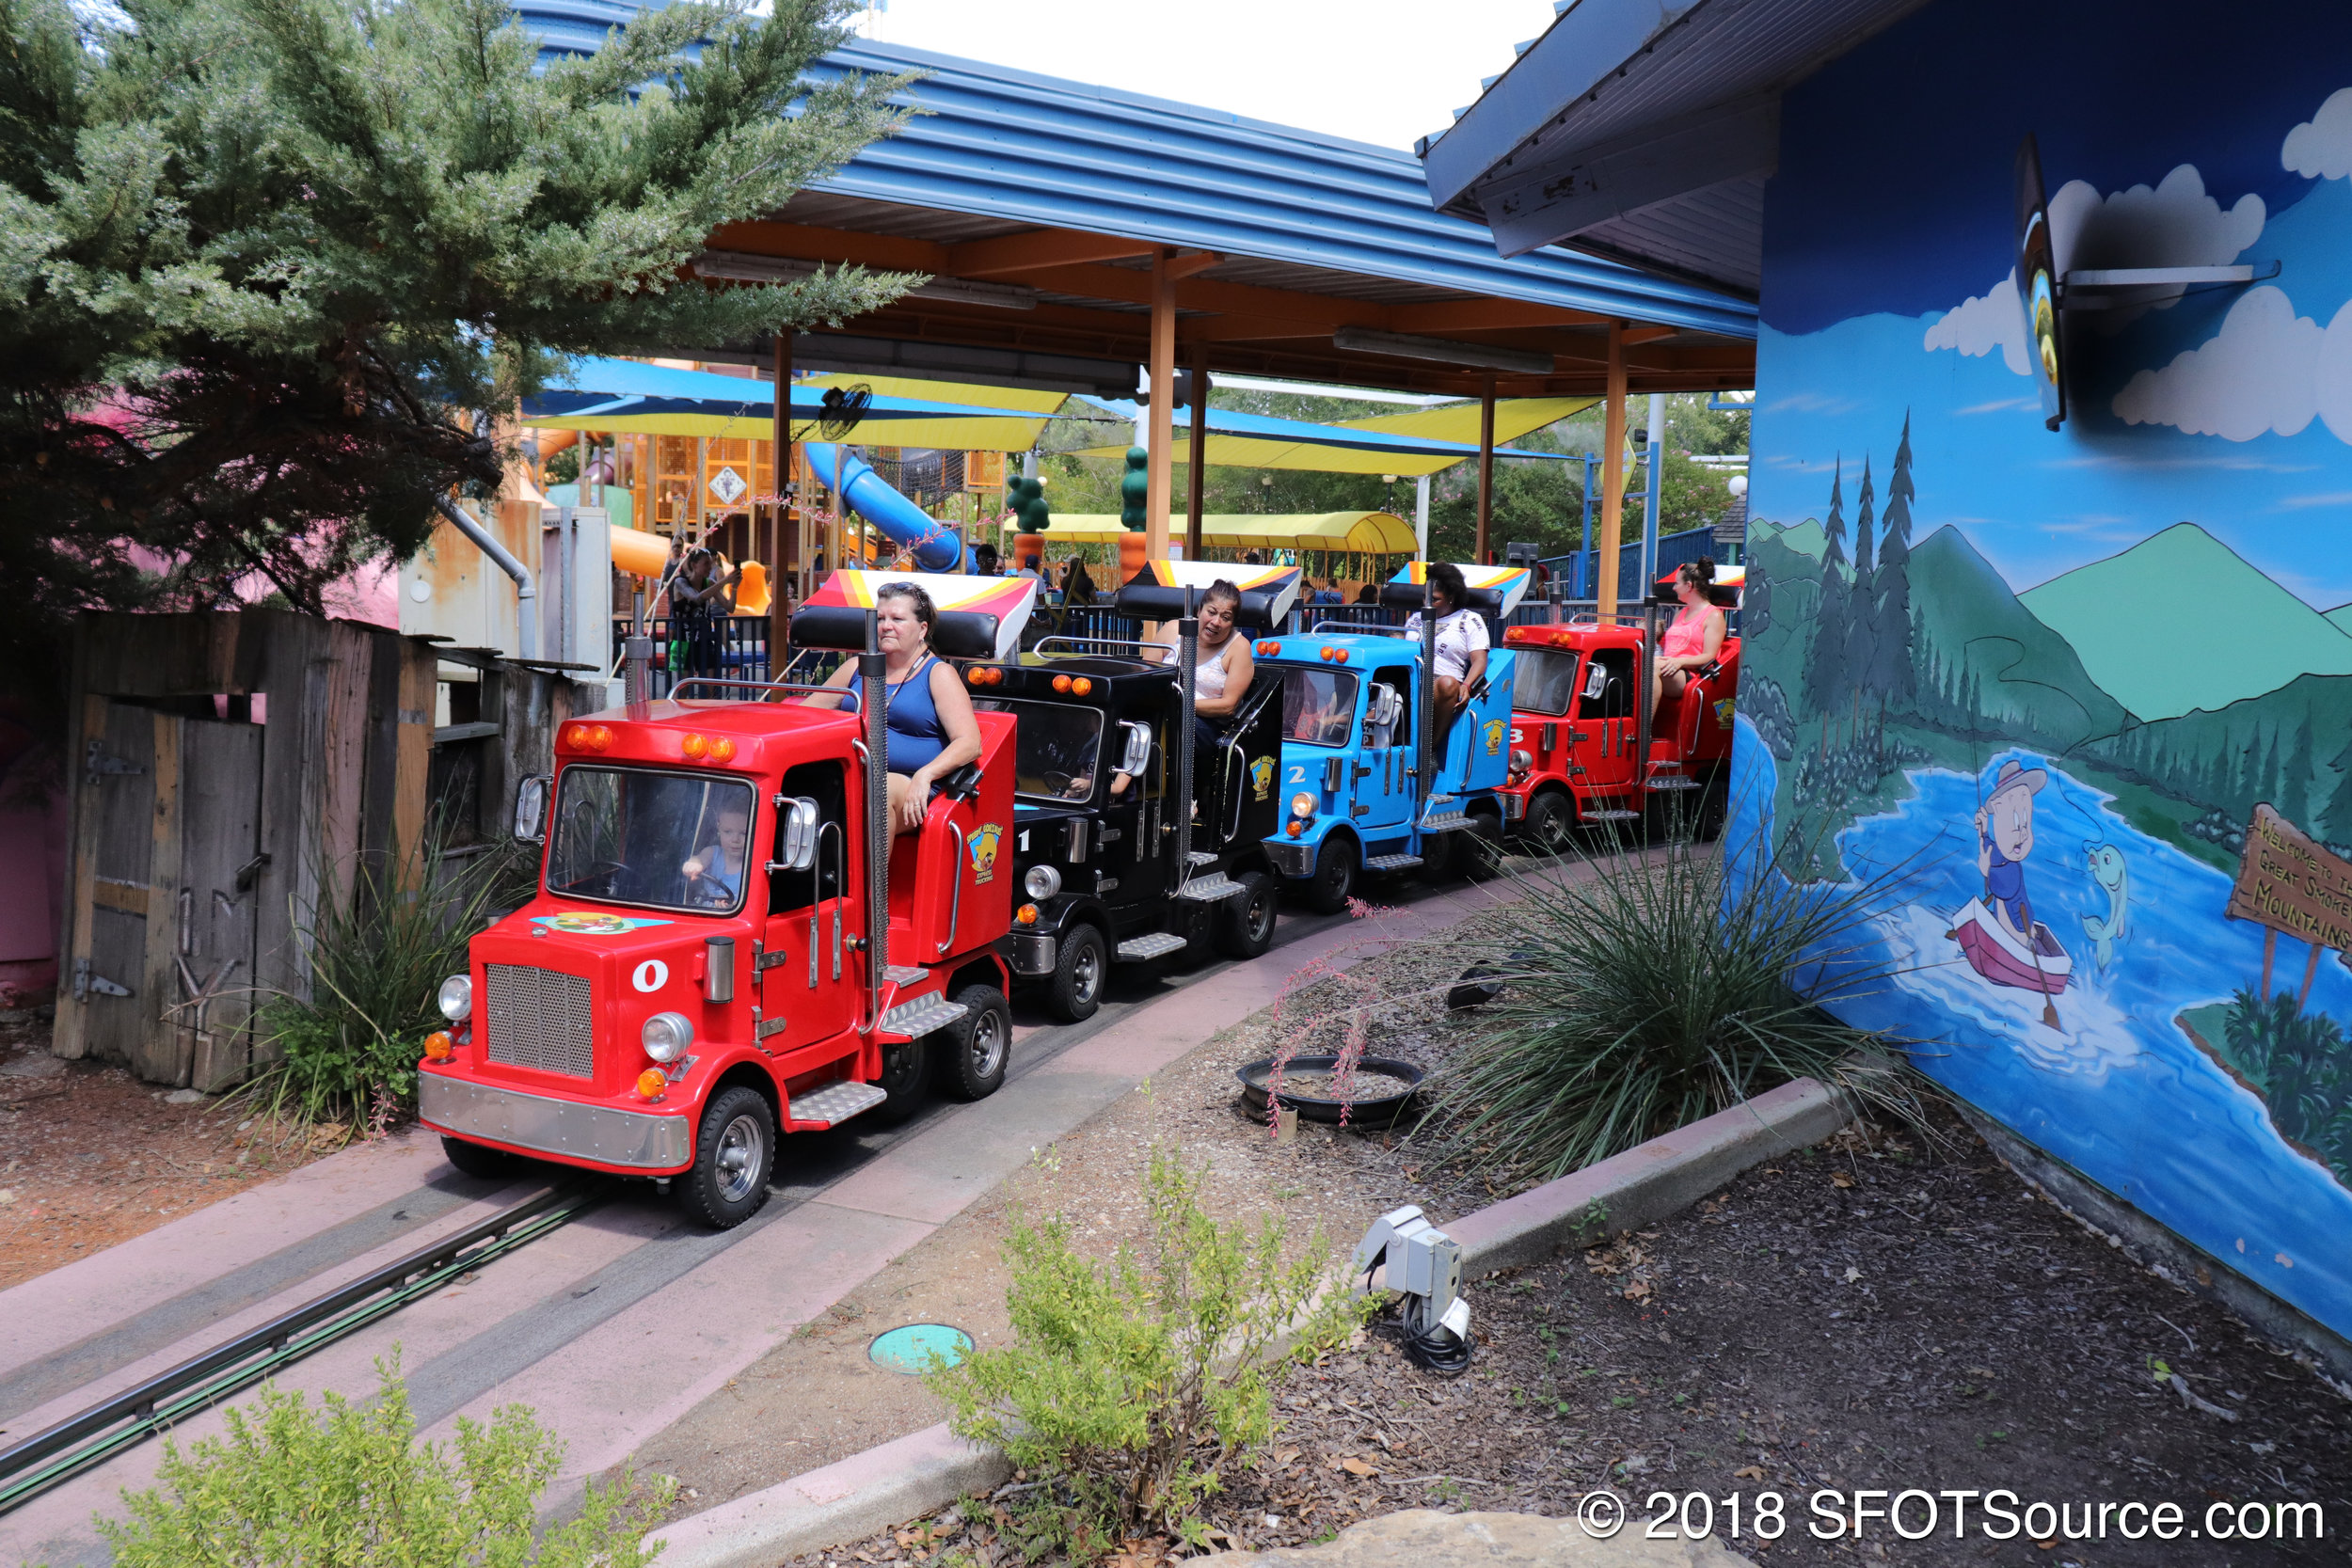 The attraction is located in Bugs Bunny Boomtown.